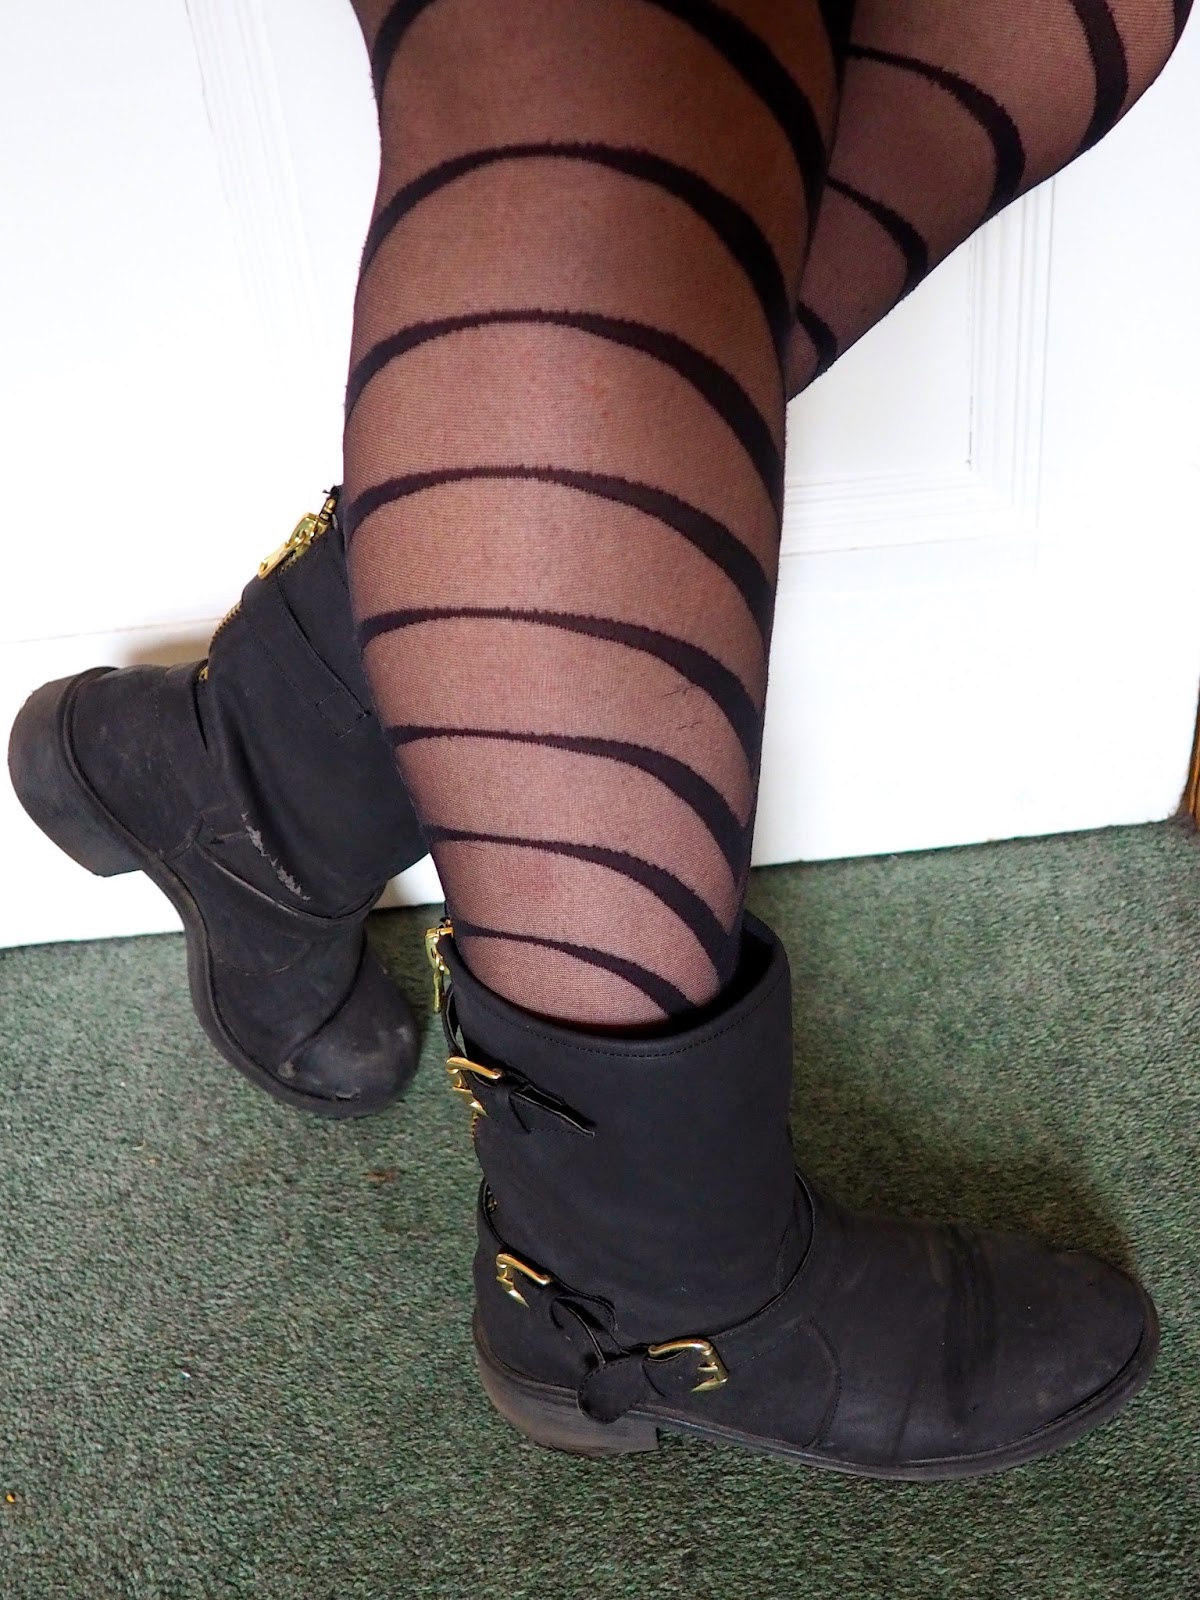 Statement Pieces outfit details | black striped patterned tights and black biker boots